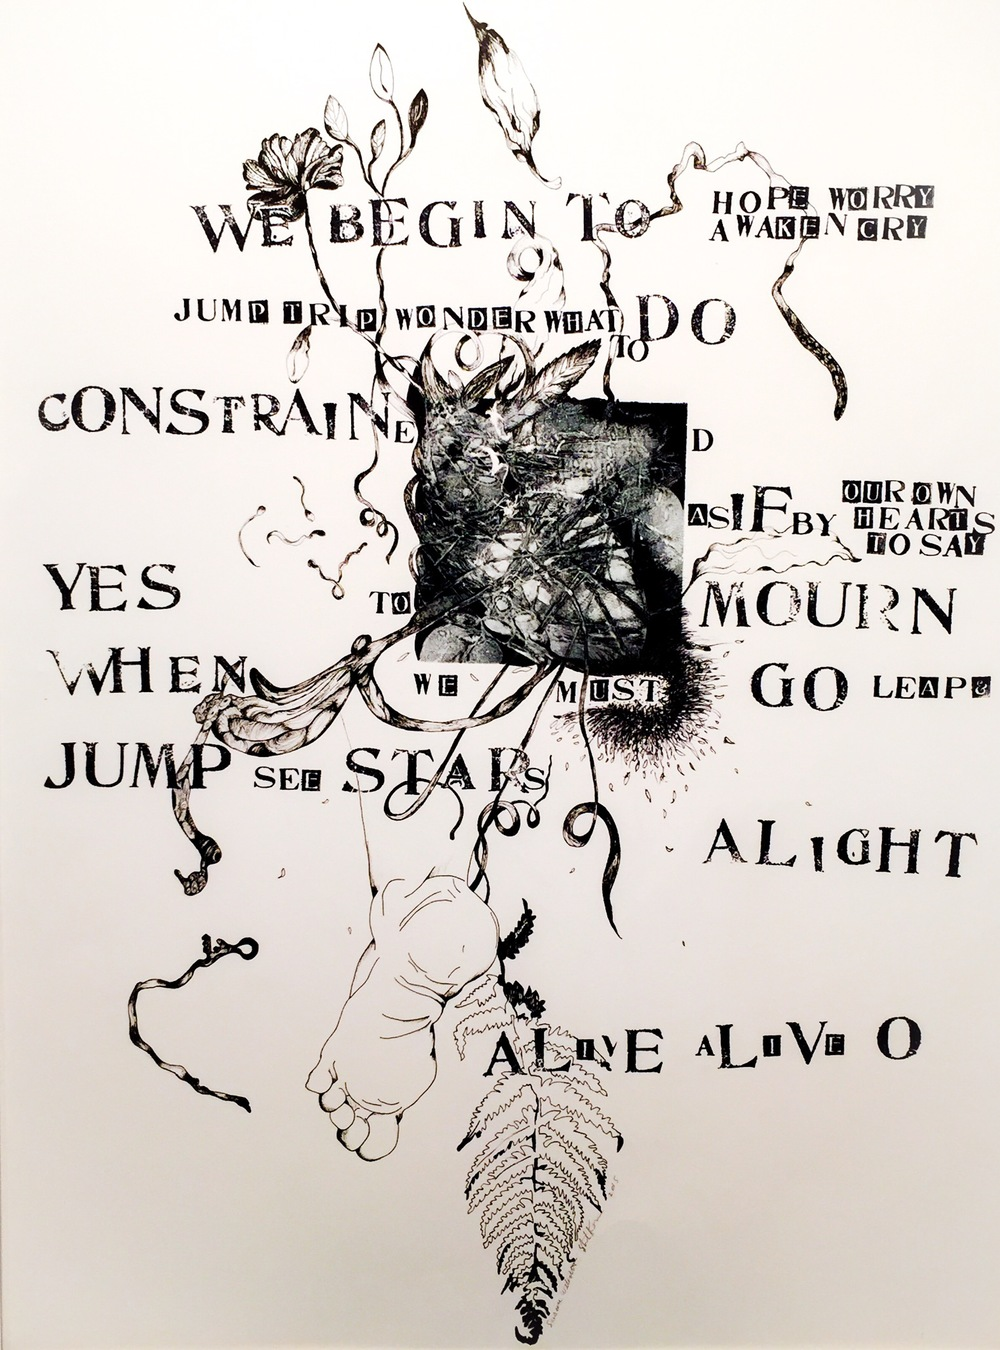 Alight   23 x 30 inches  mixed media  image: Susan Webster  hand stamped text: Stuart Kestenbaum  2015